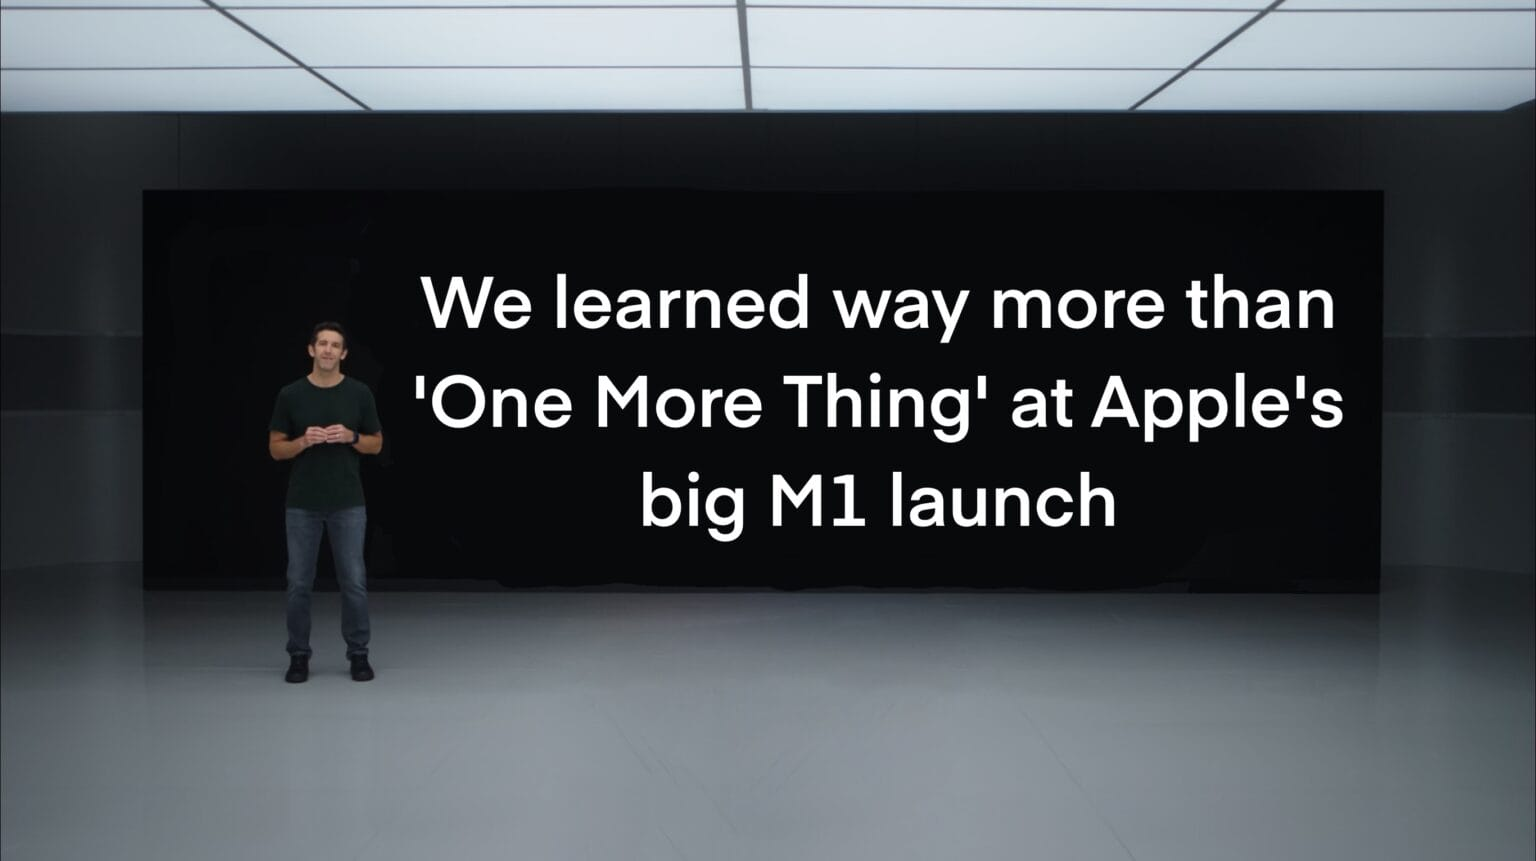 6 more things we learned at Apple's One More Thing M1 Mac event